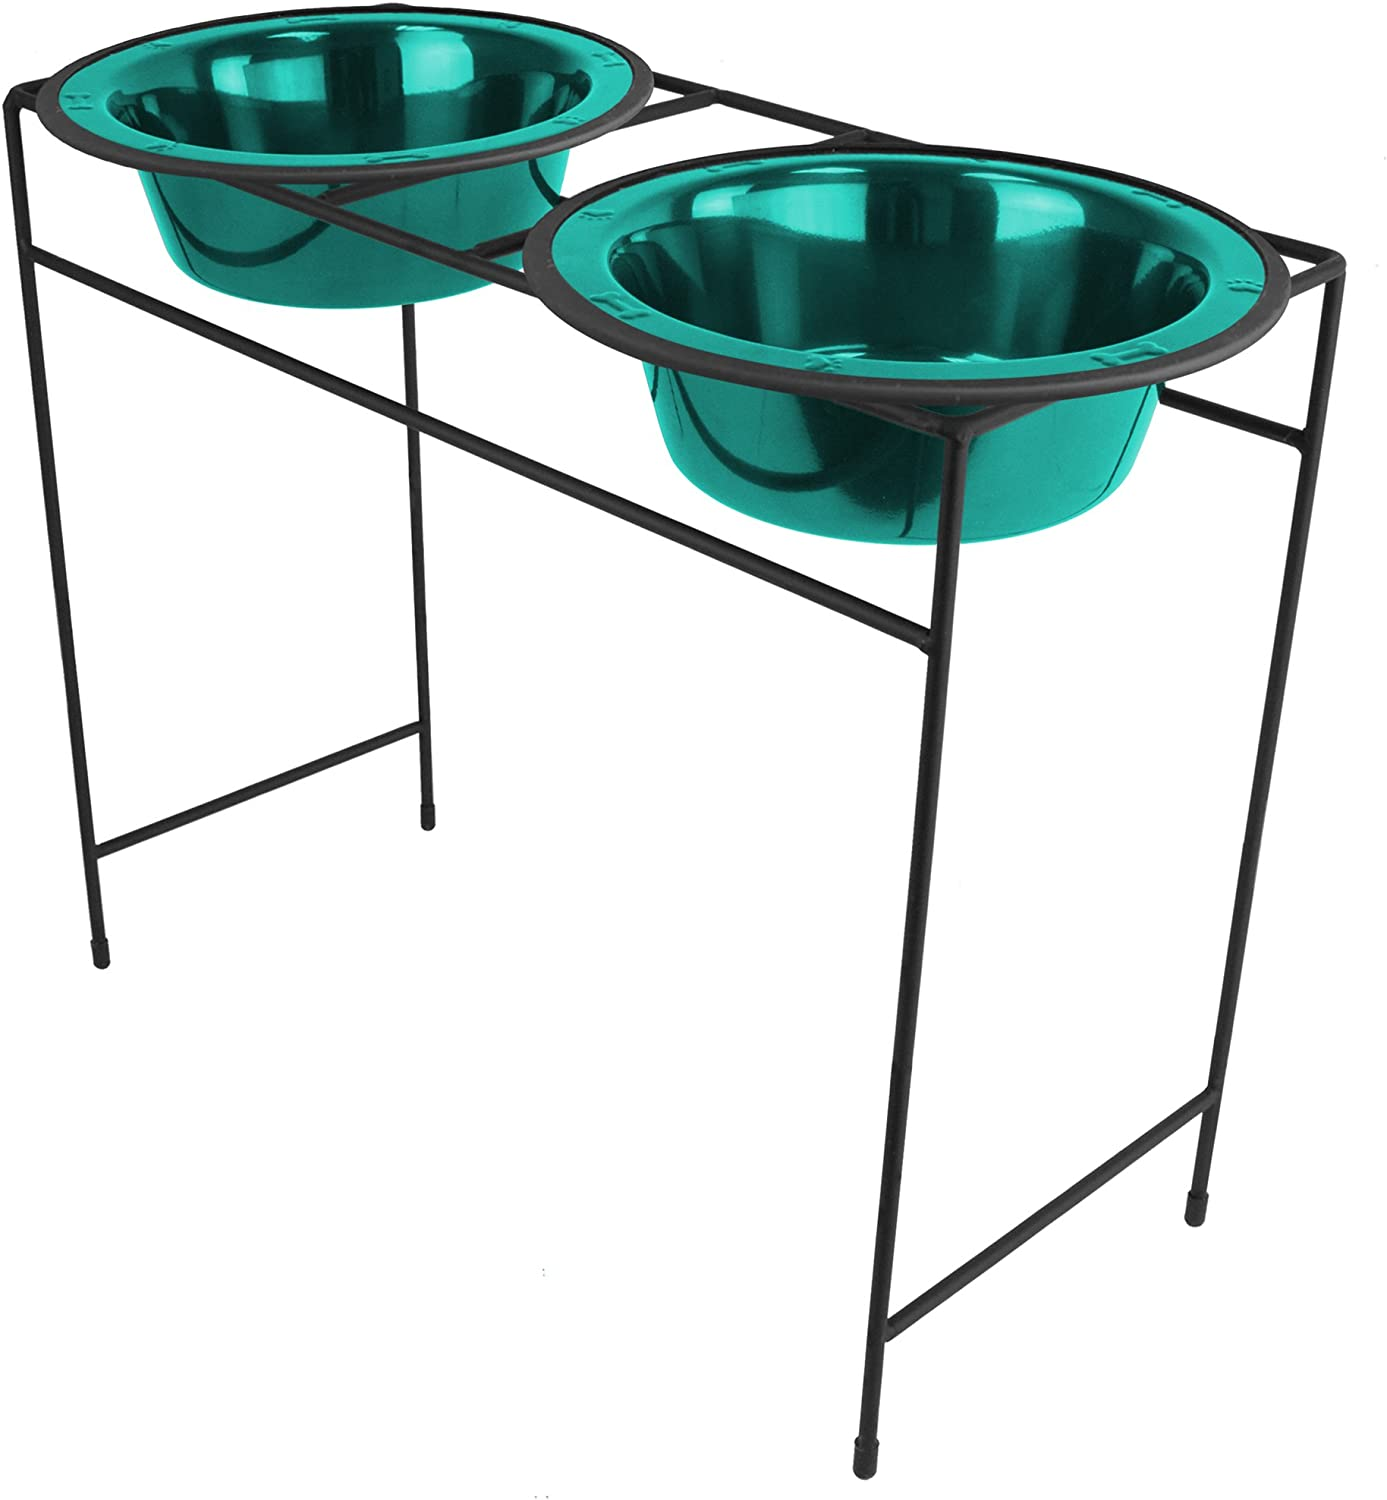 Platinum Pets Double Diner Feeder with Stainless Steel Dog Bowls, 80 oz, Teal